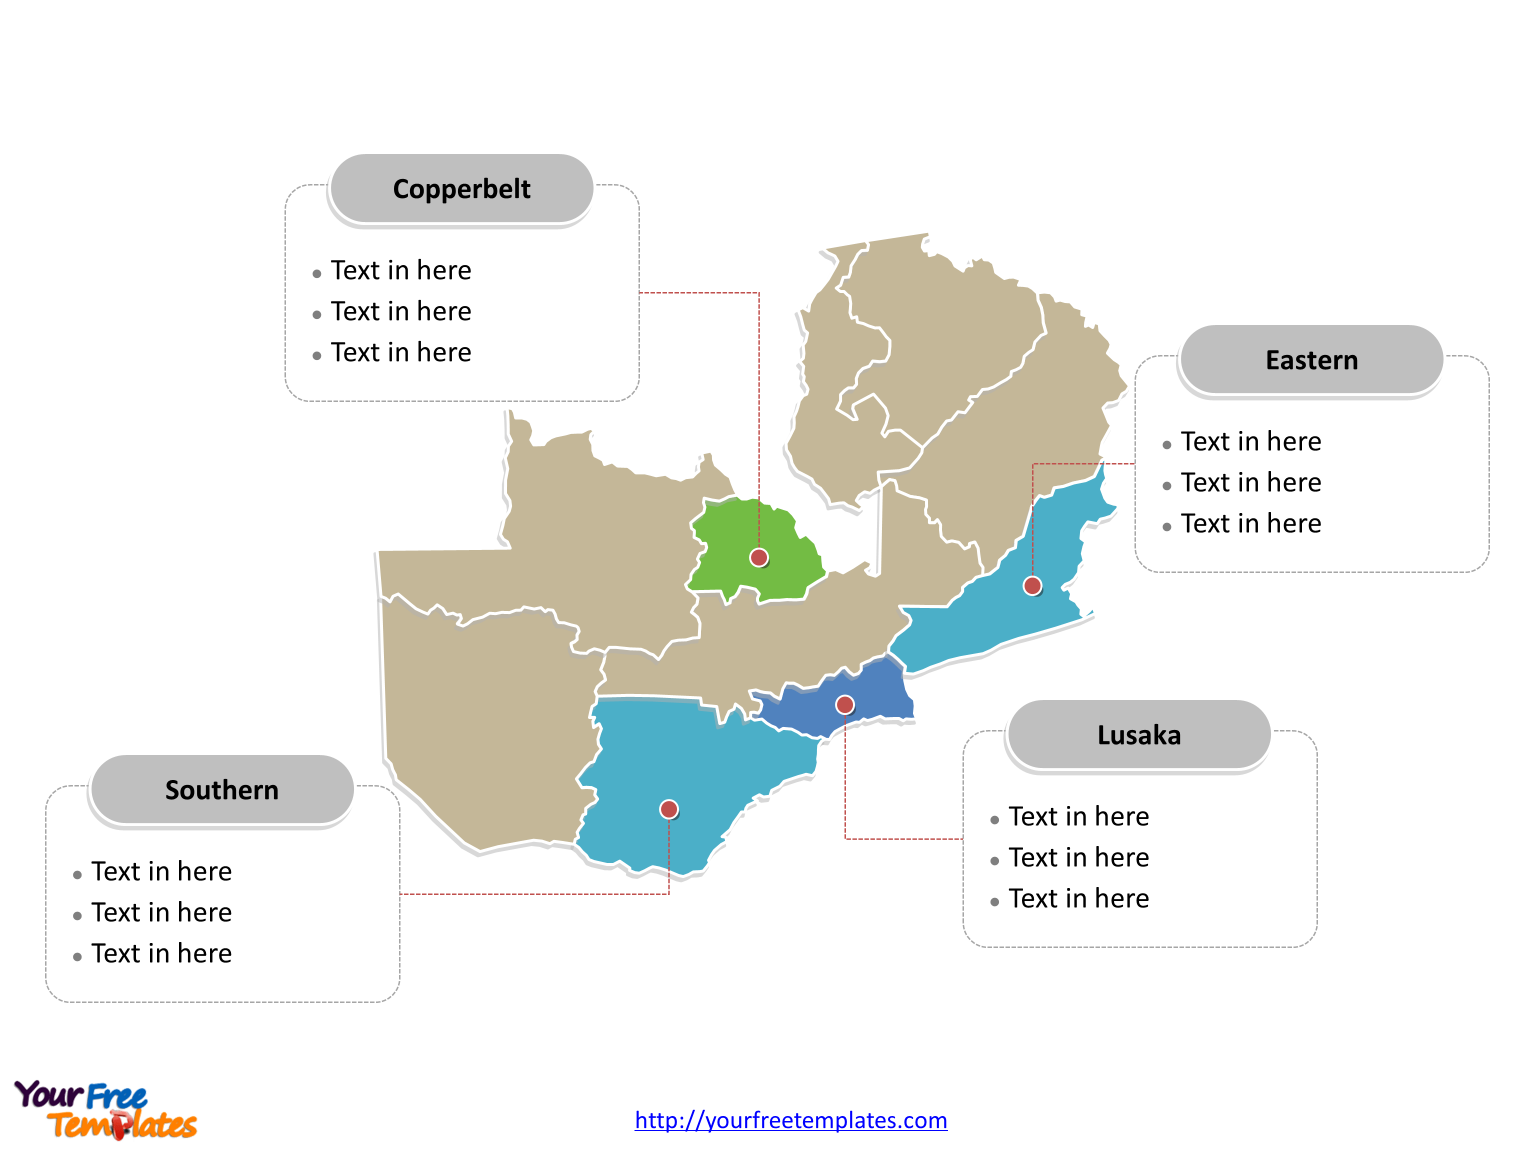 Zambia Political map labeled with major provinces